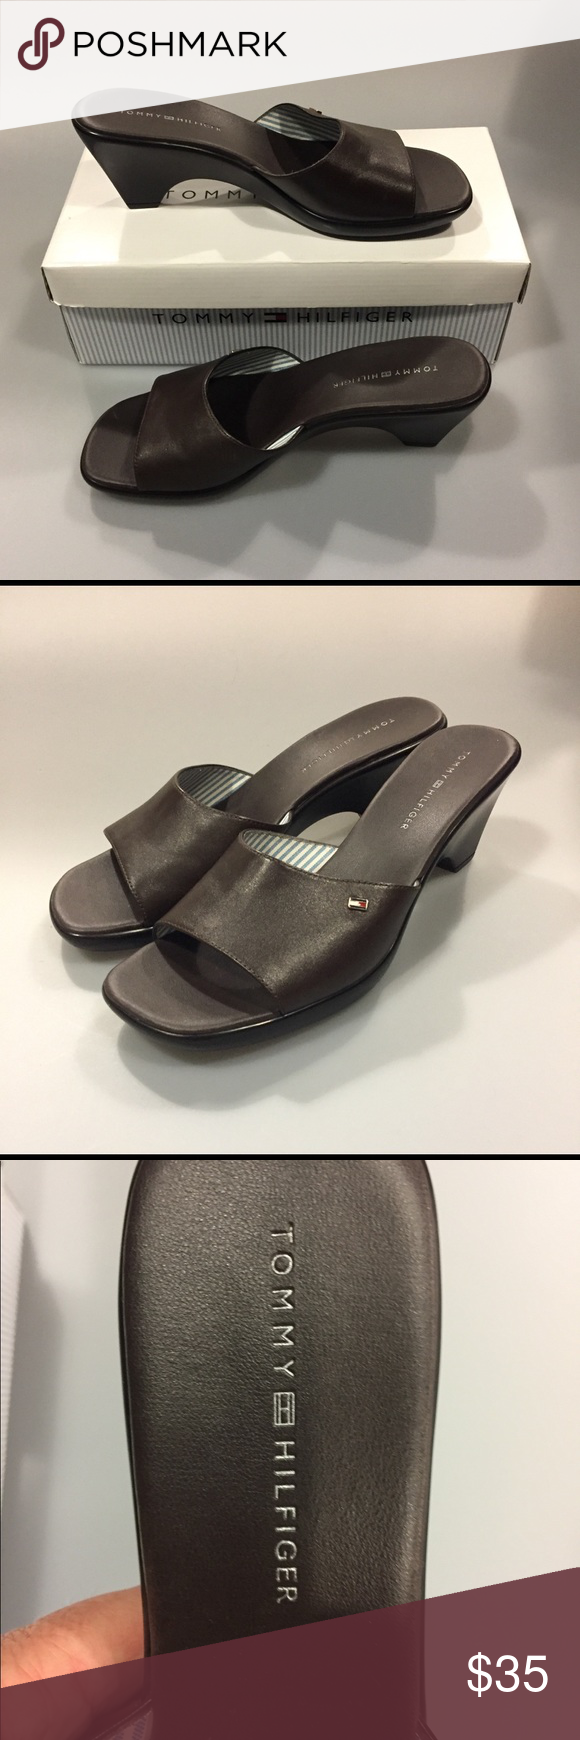 8a4f64cad8d4 Tommy Hilfiger Marie Brown Leather Sandals Tommy Hilfiger Marie Brown  Leather Sandals size 9 M New